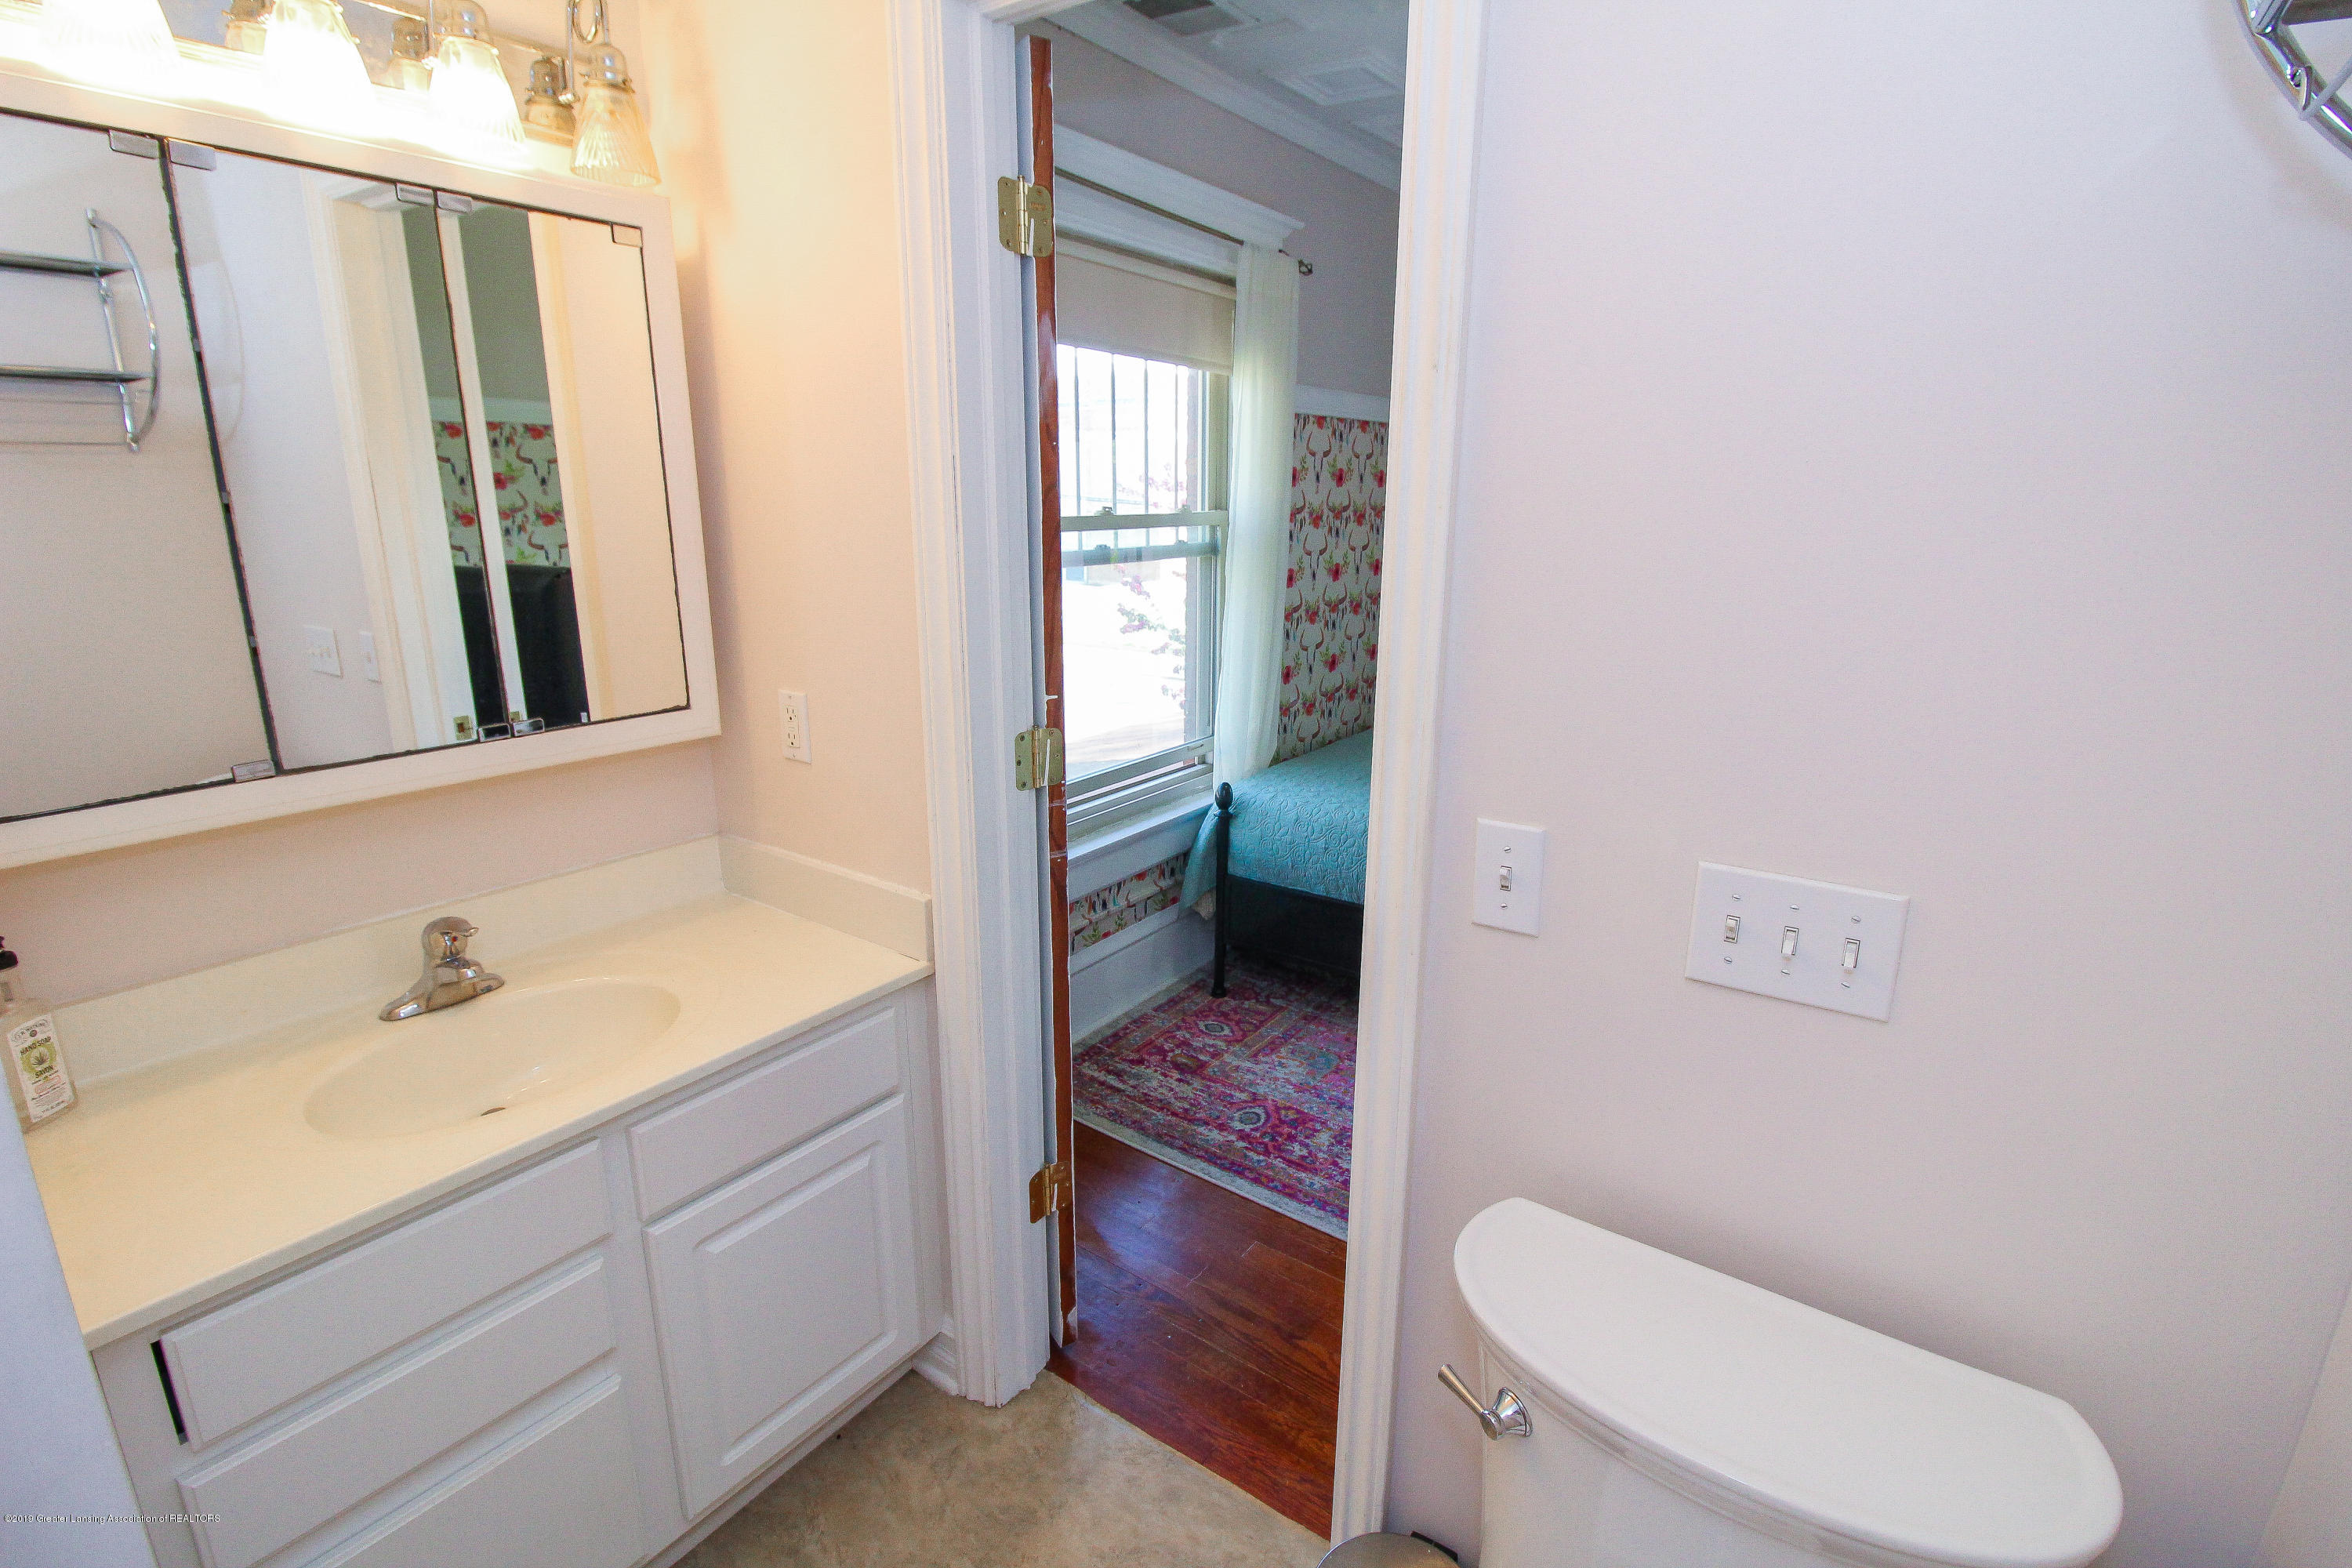 200 W Cass St - Bedroom Bathroom - 48